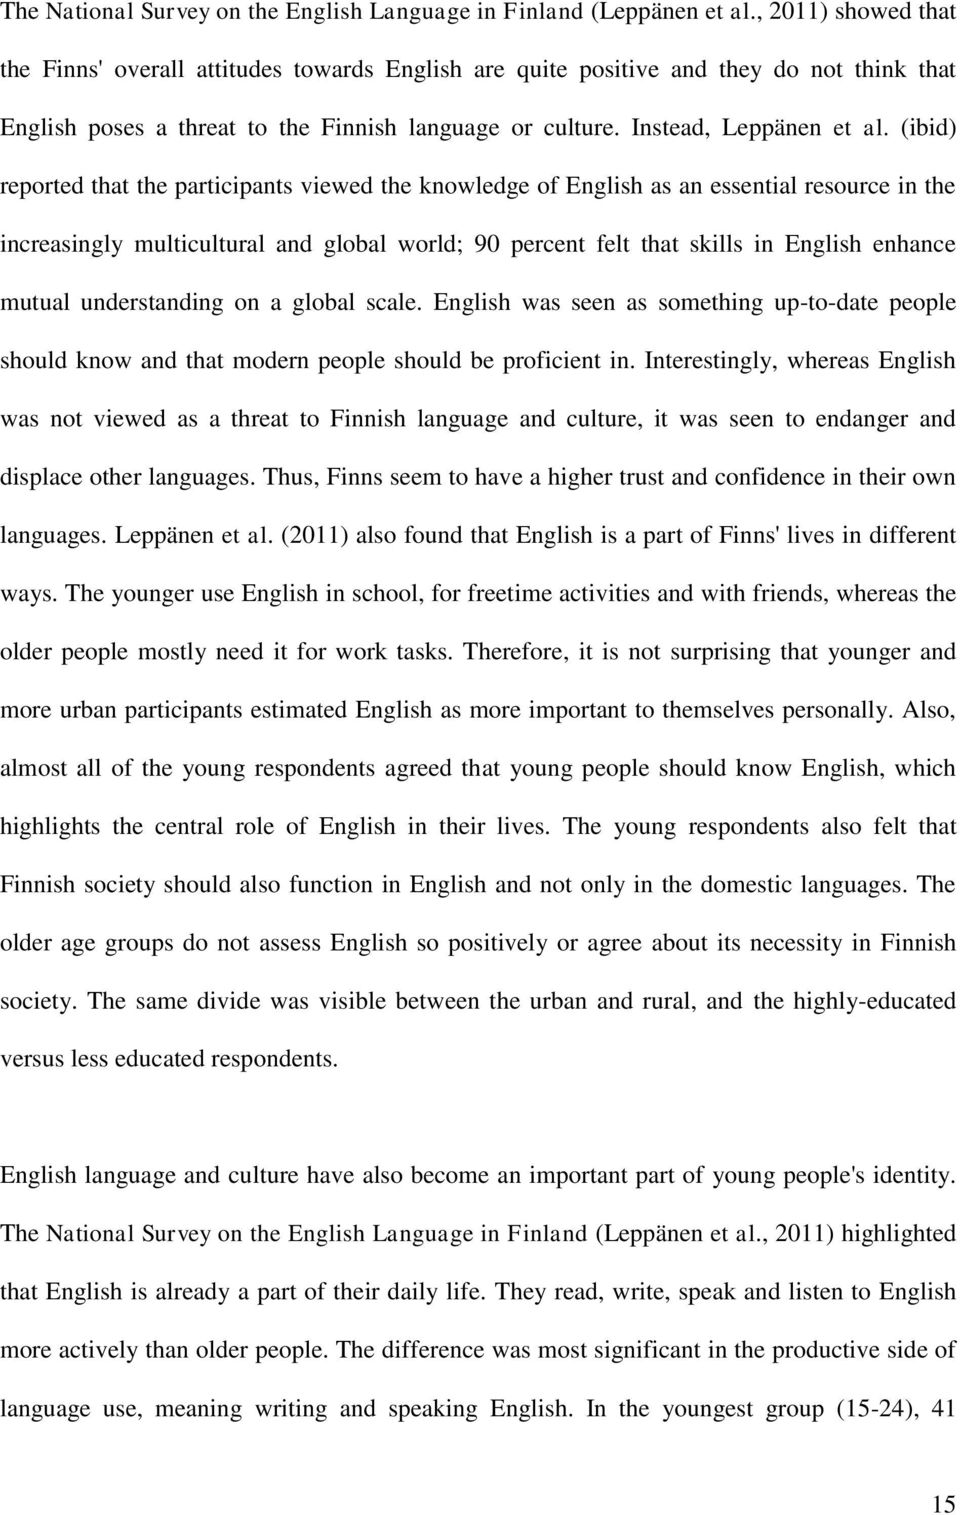 (ibid) reported that the participants viewed the knowledge of English as an essential resource in the increasingly multicultural and global world; 90 percent felt that skills in English enhance